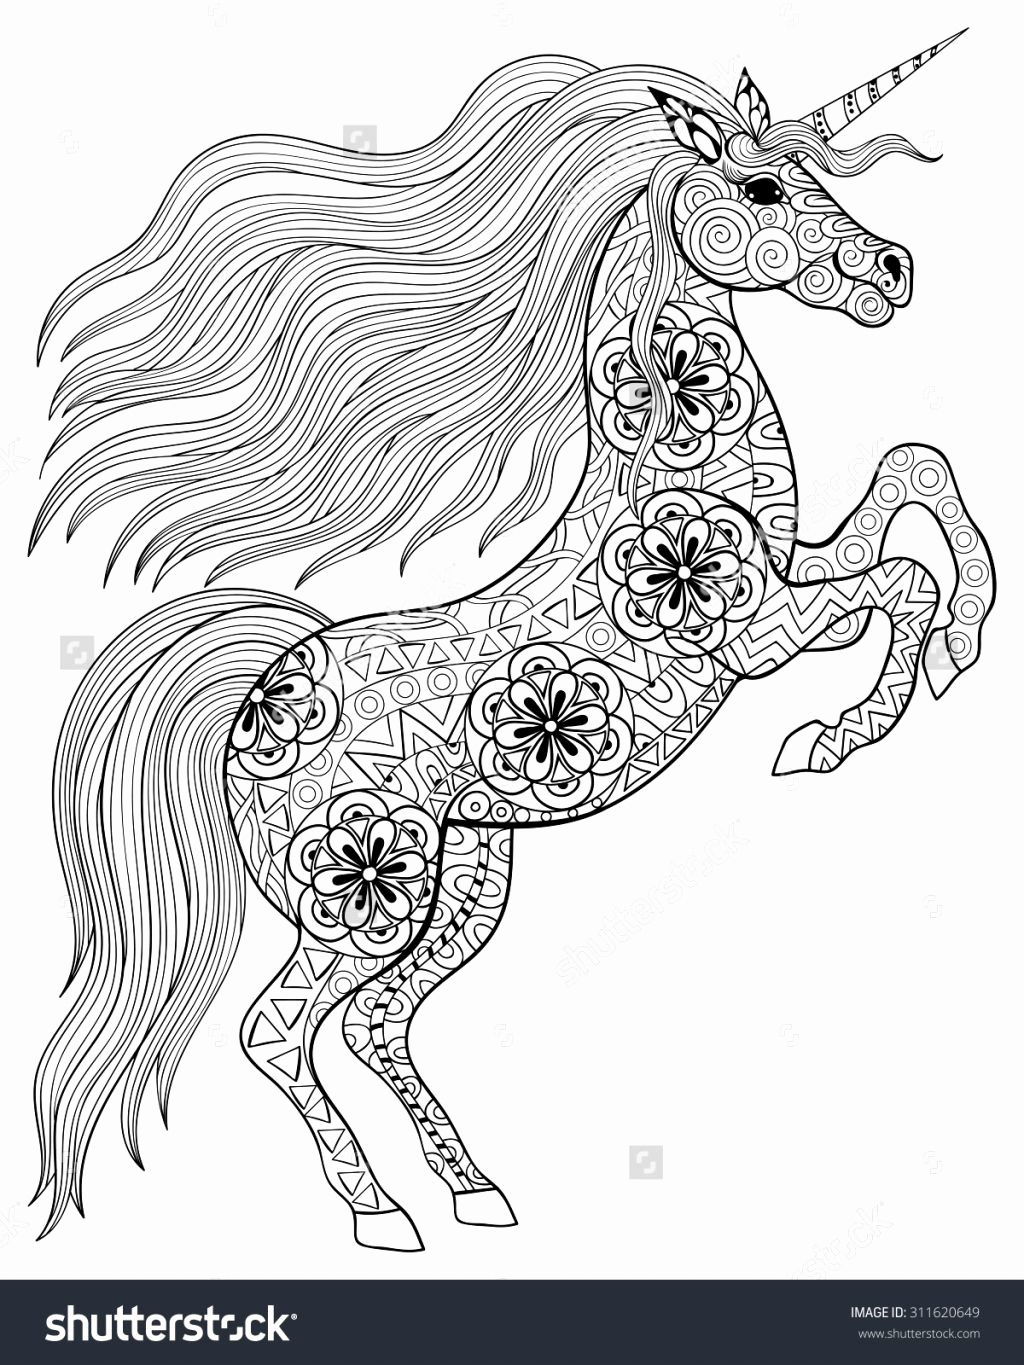 Printable Hard Beautiful Unicorn Unicorn Coloring Pages